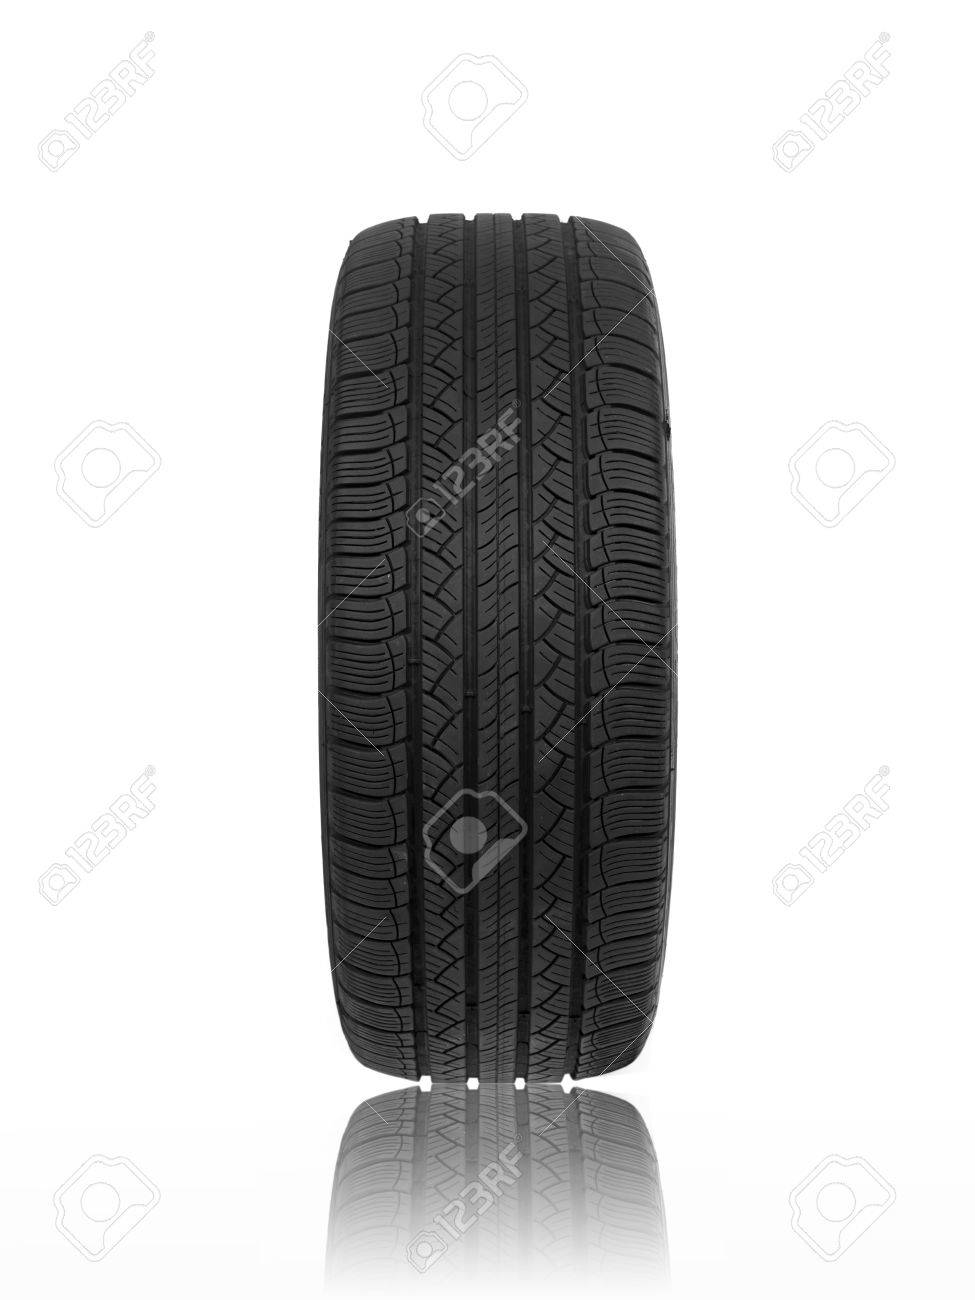 A black rubber tyre isolated against a white background Stock Photo - 22384161